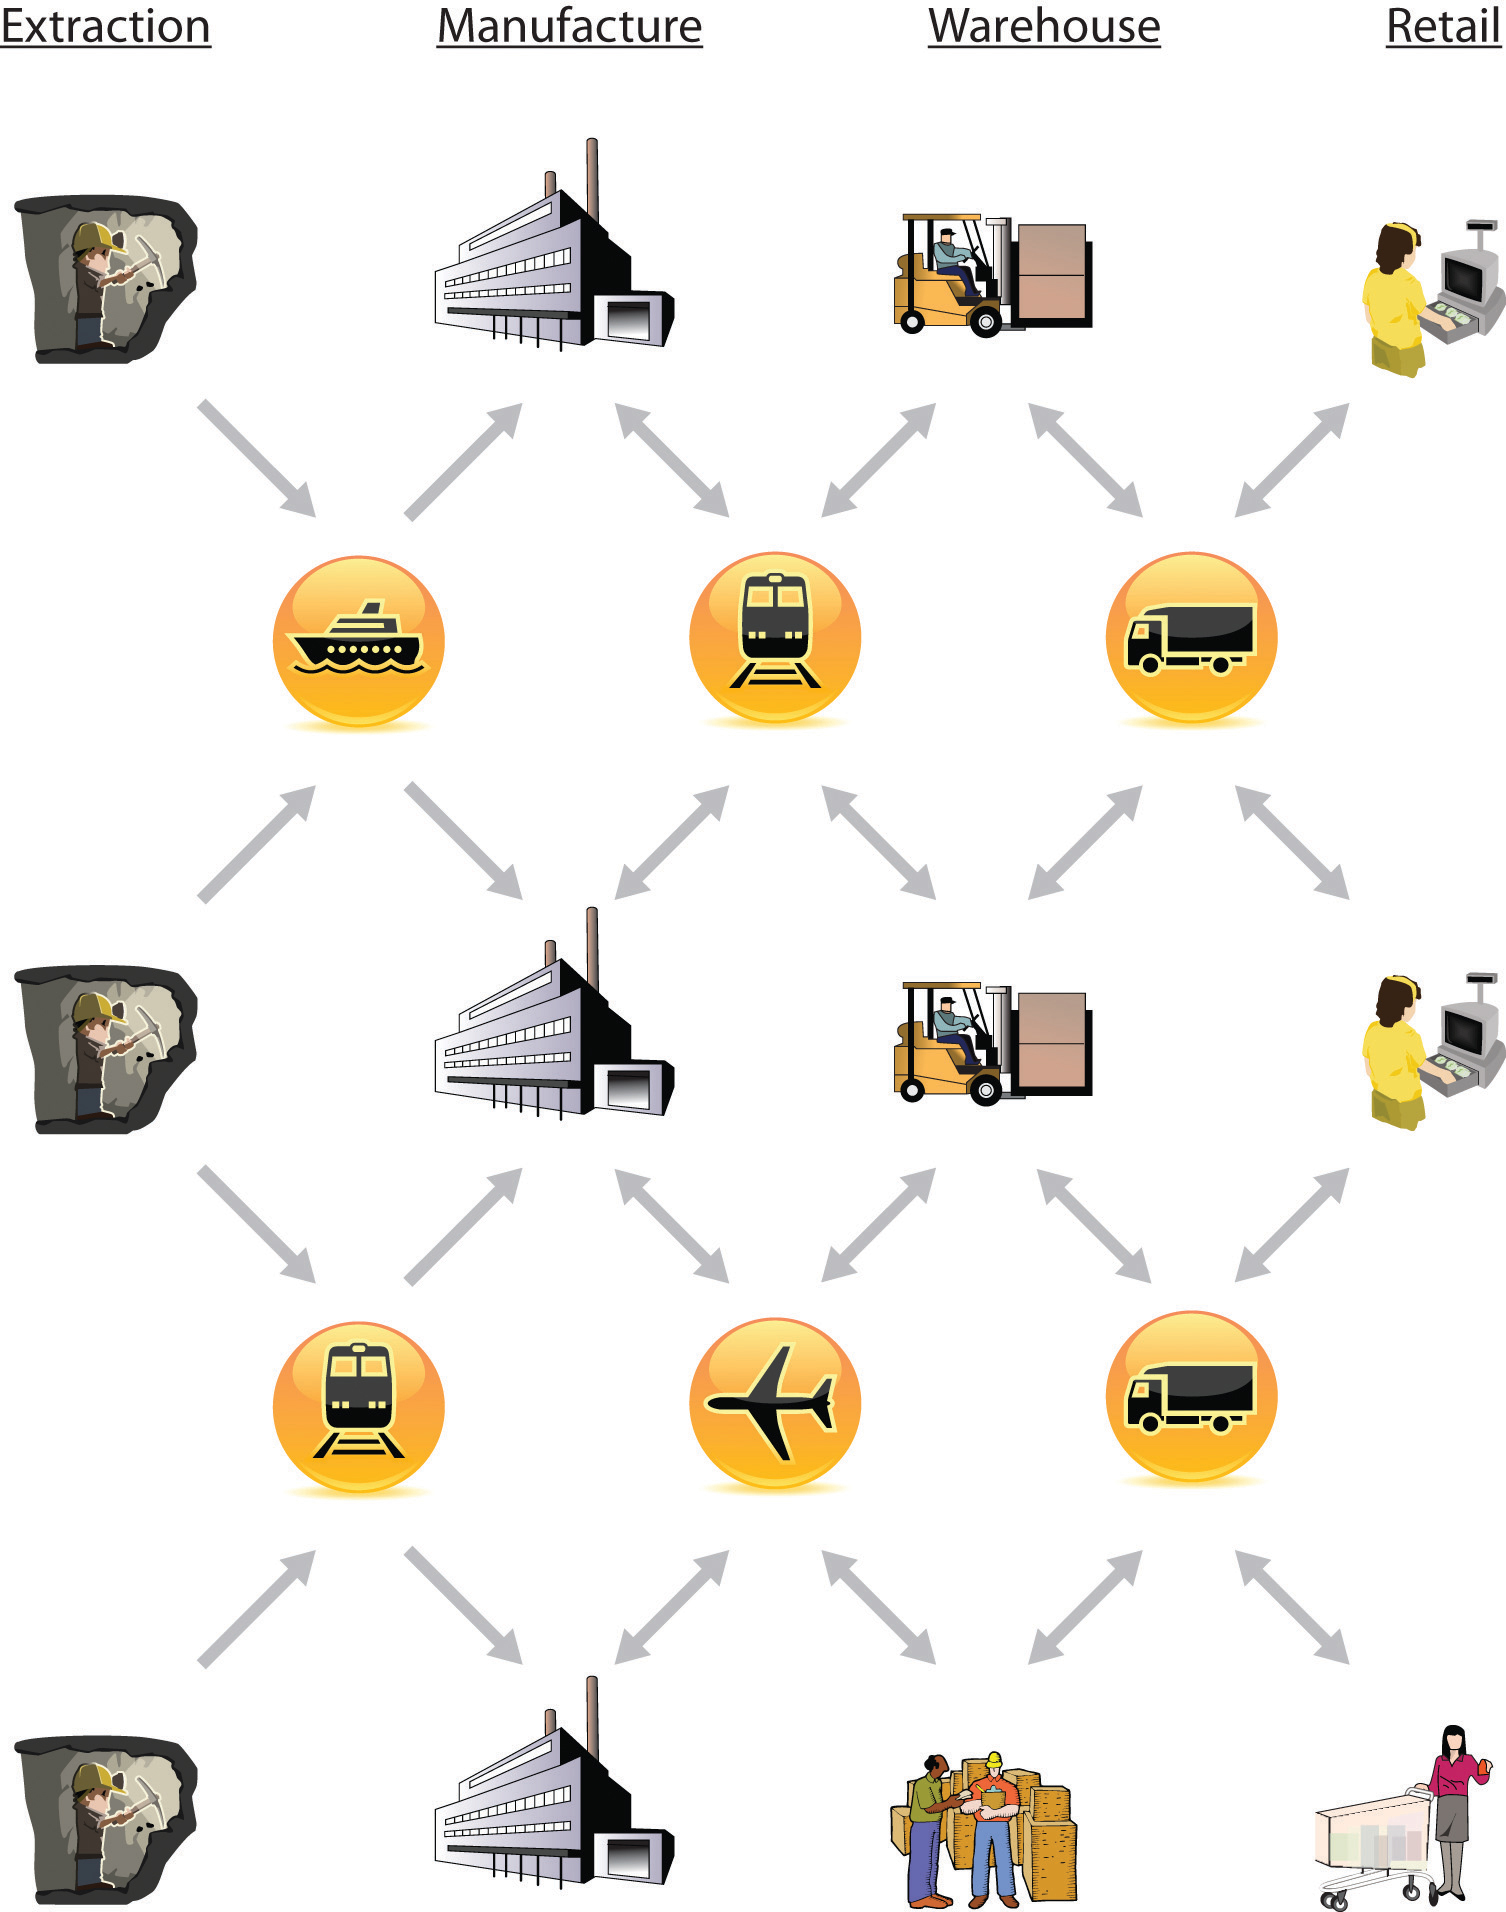 What are the differences between a traditional,product based supply chain and a service supply chain?